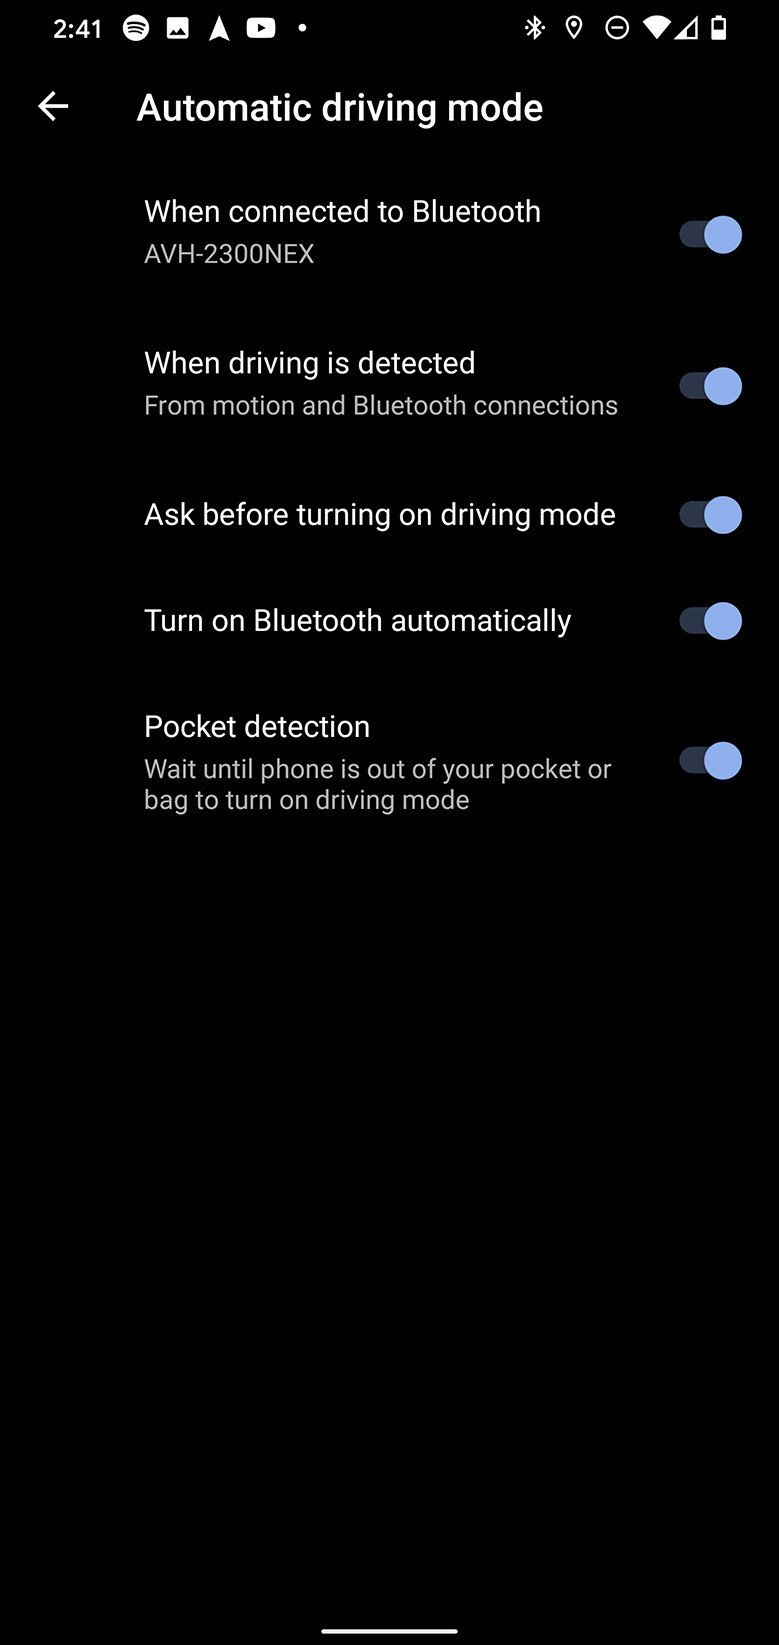 google_driving_mode_settings.jpg?itok=H3